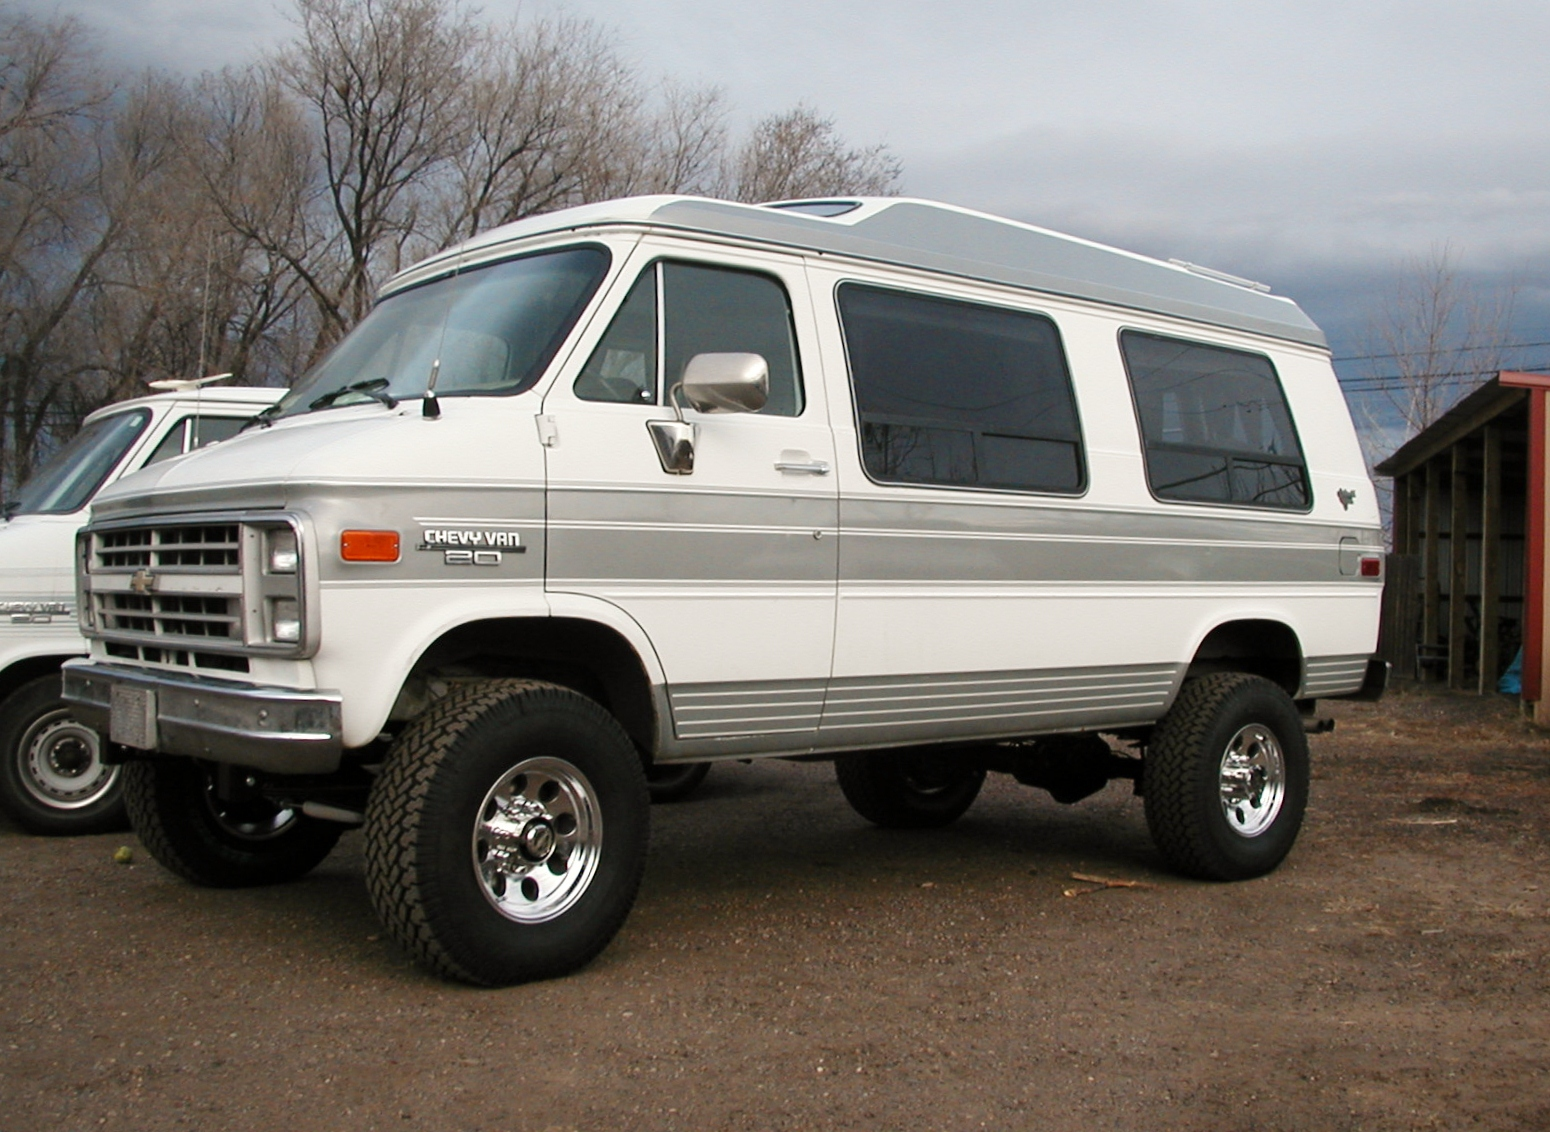 4x4 Chevy G series van